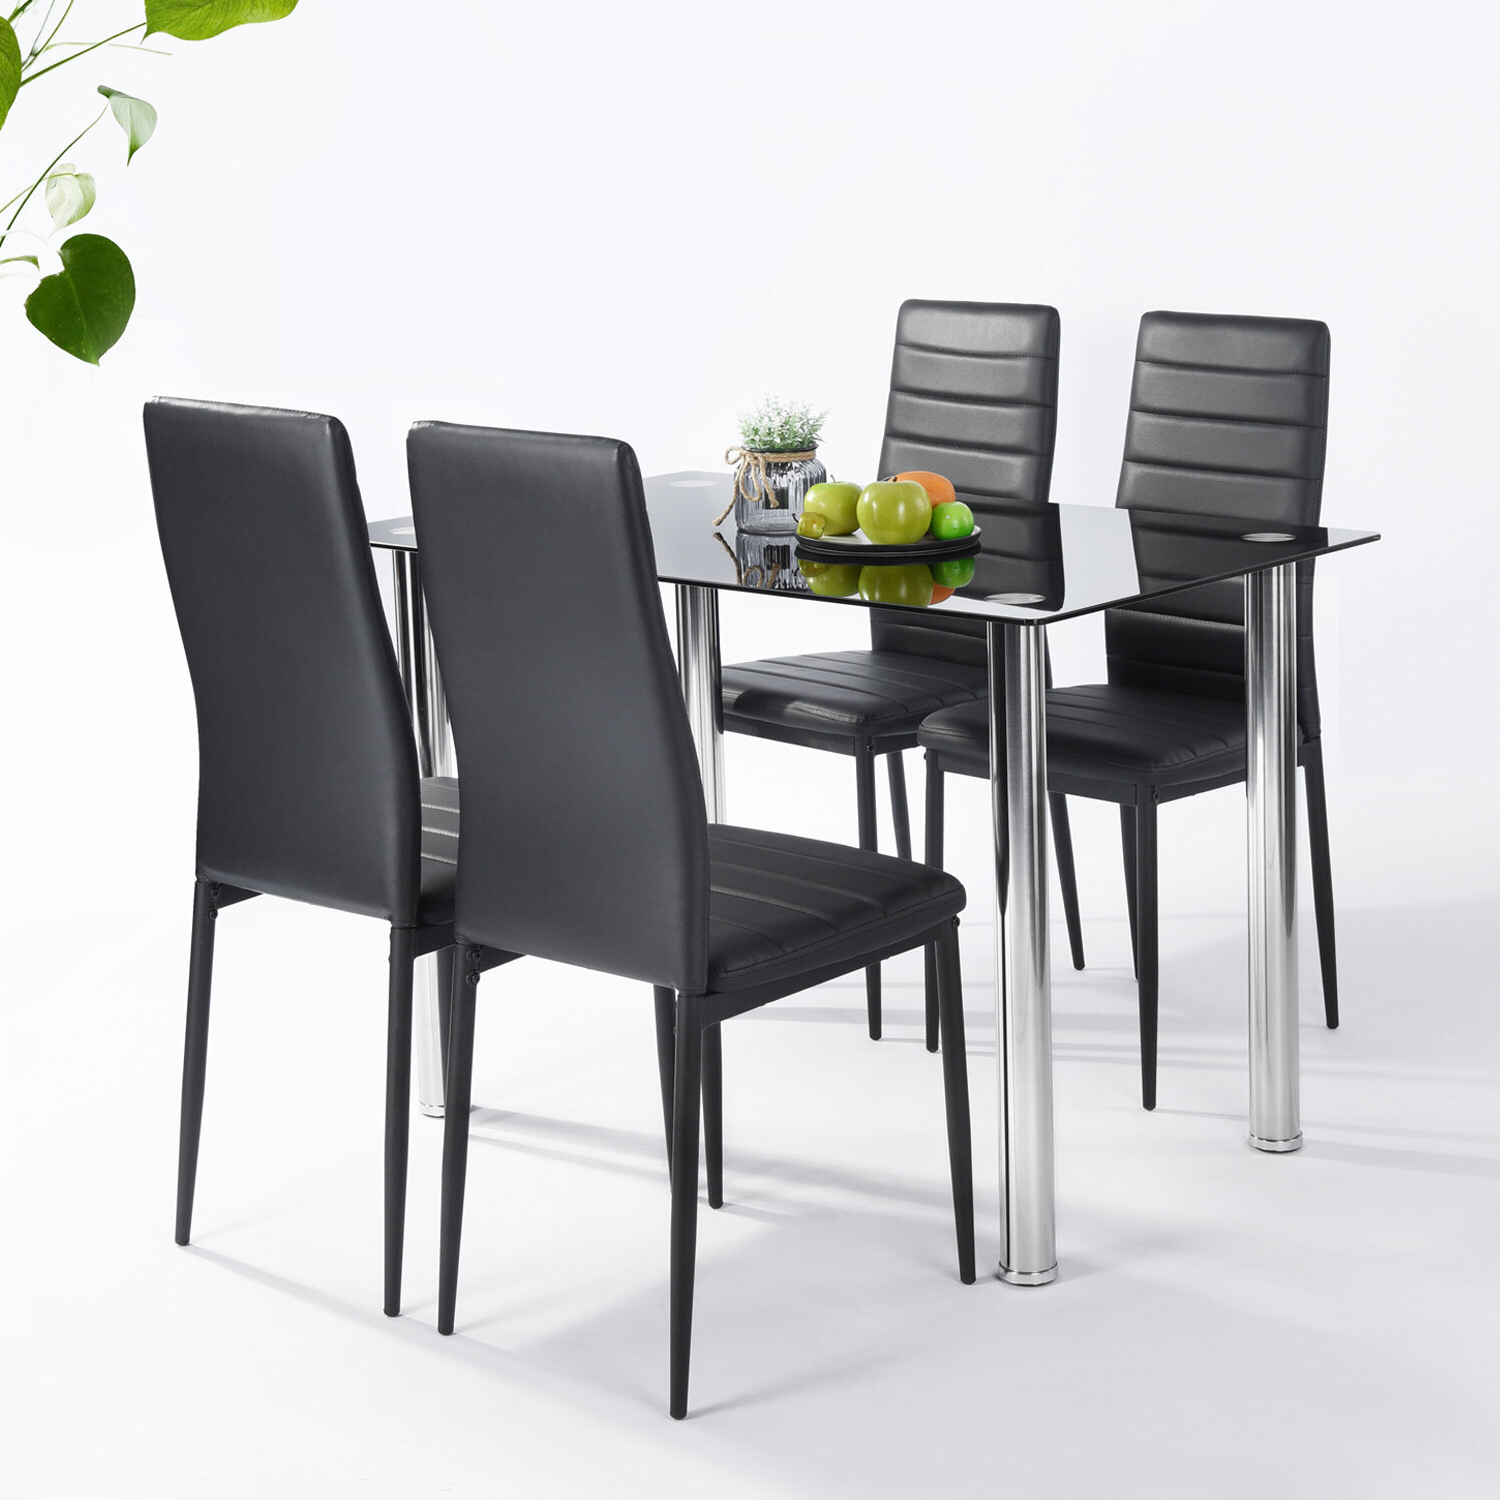 Most Recent Lamotte 5 Piece Dining Sets Regarding Lamotte 5 Piece Dining Set (View 1 of 20)